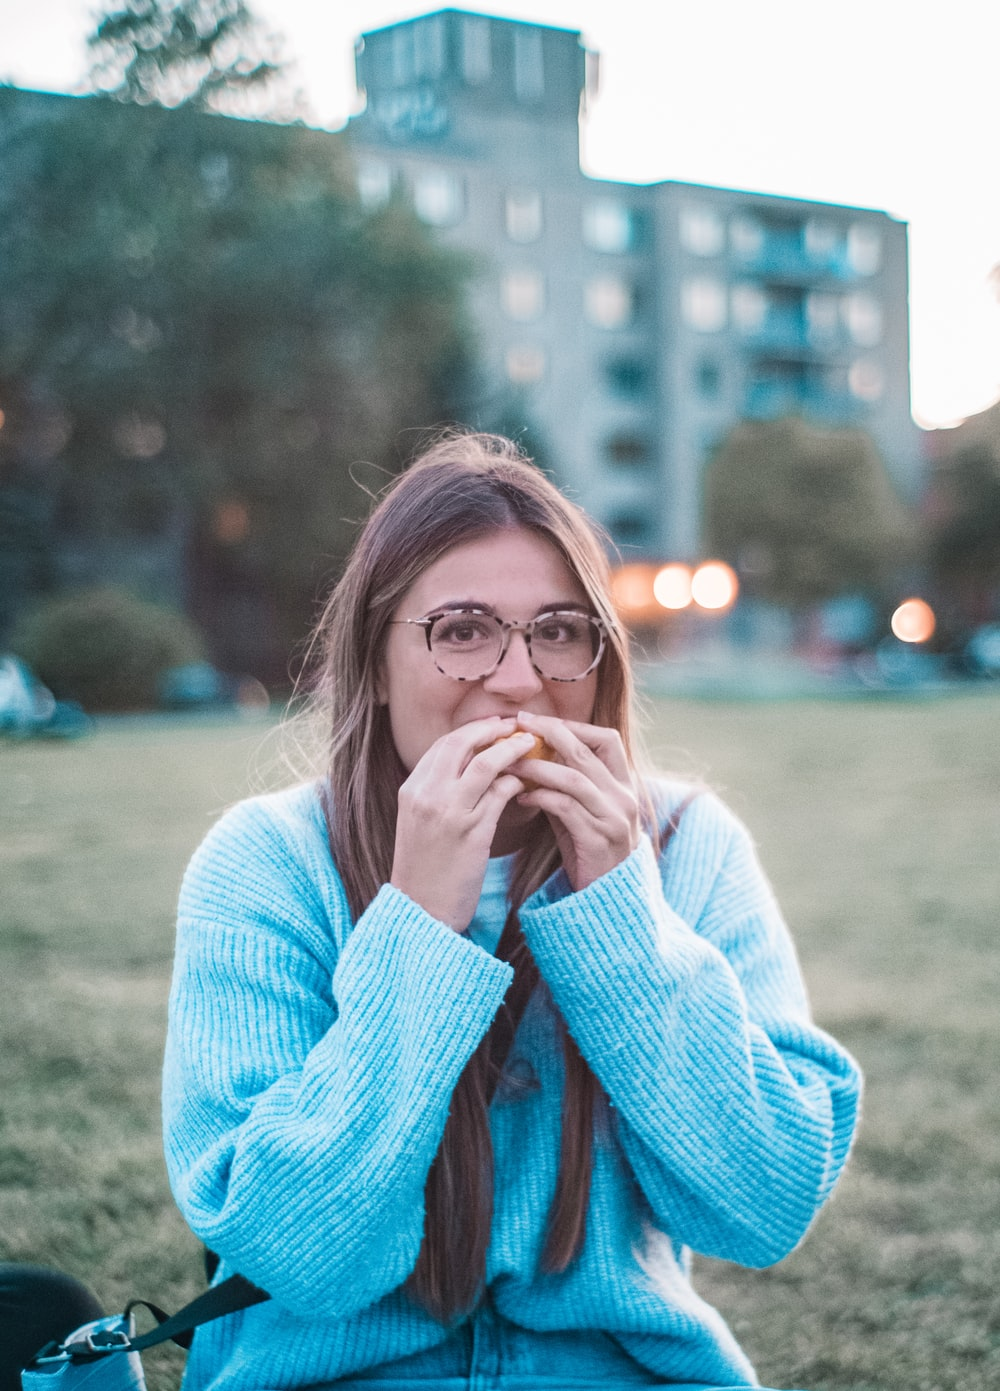 woman in blue sweater eating outdoors